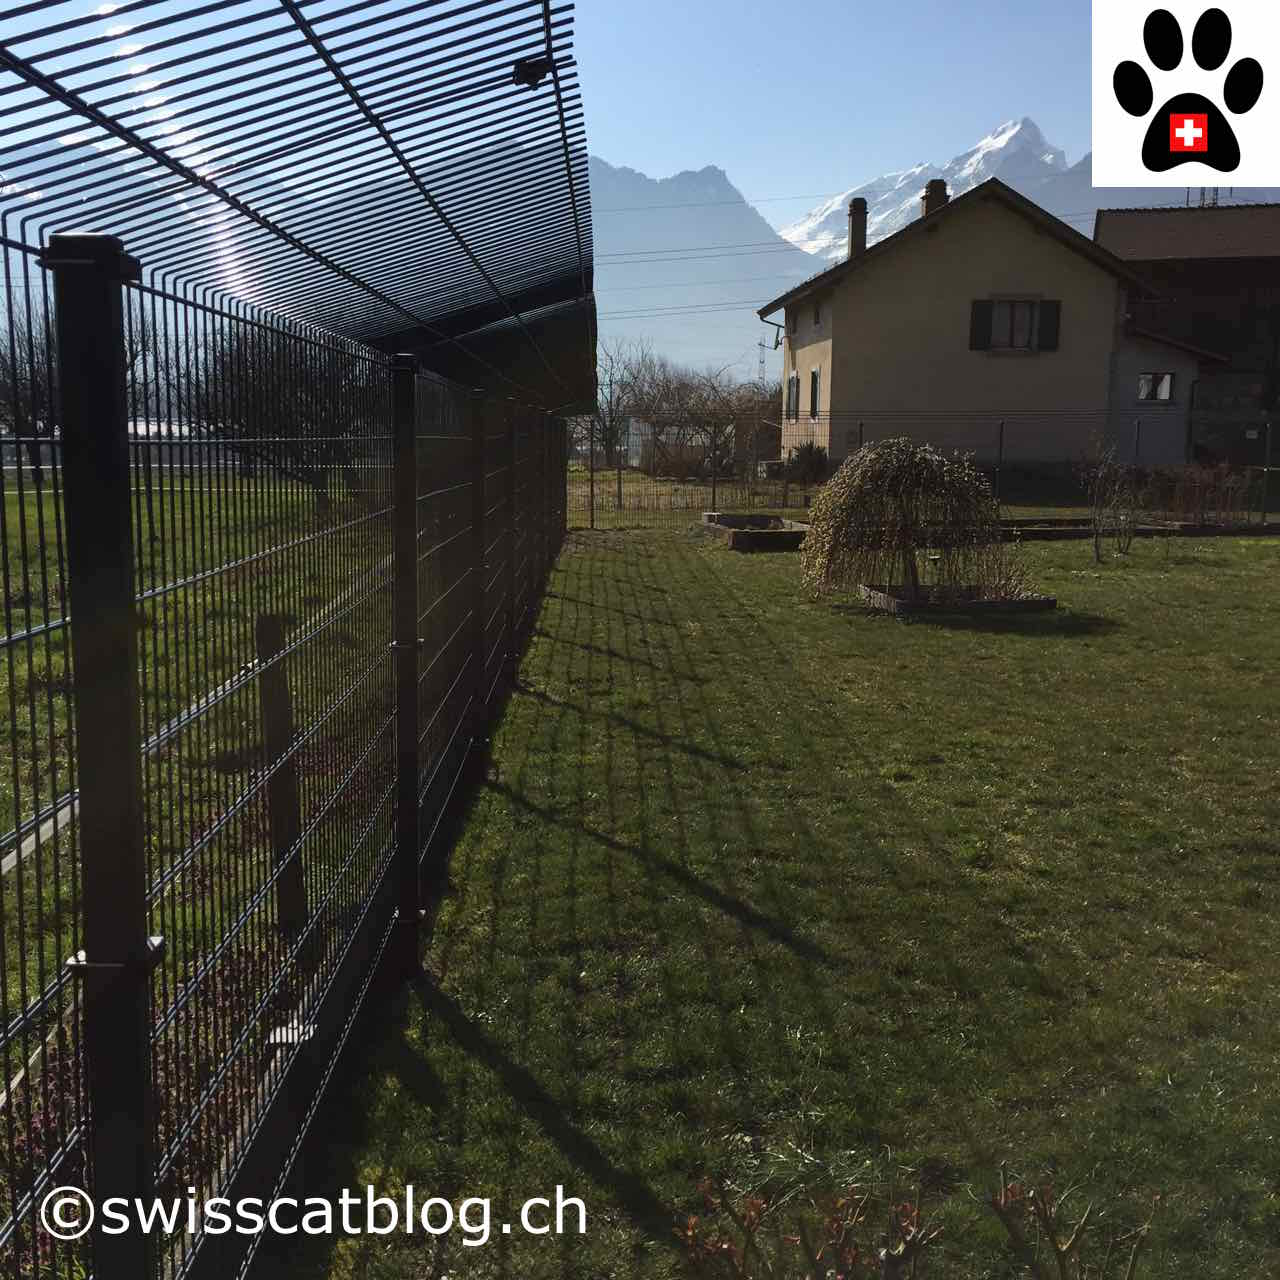 Come Recintare Un Giardino How To Enclose My Garden So That My Cats Can Safely Go Out